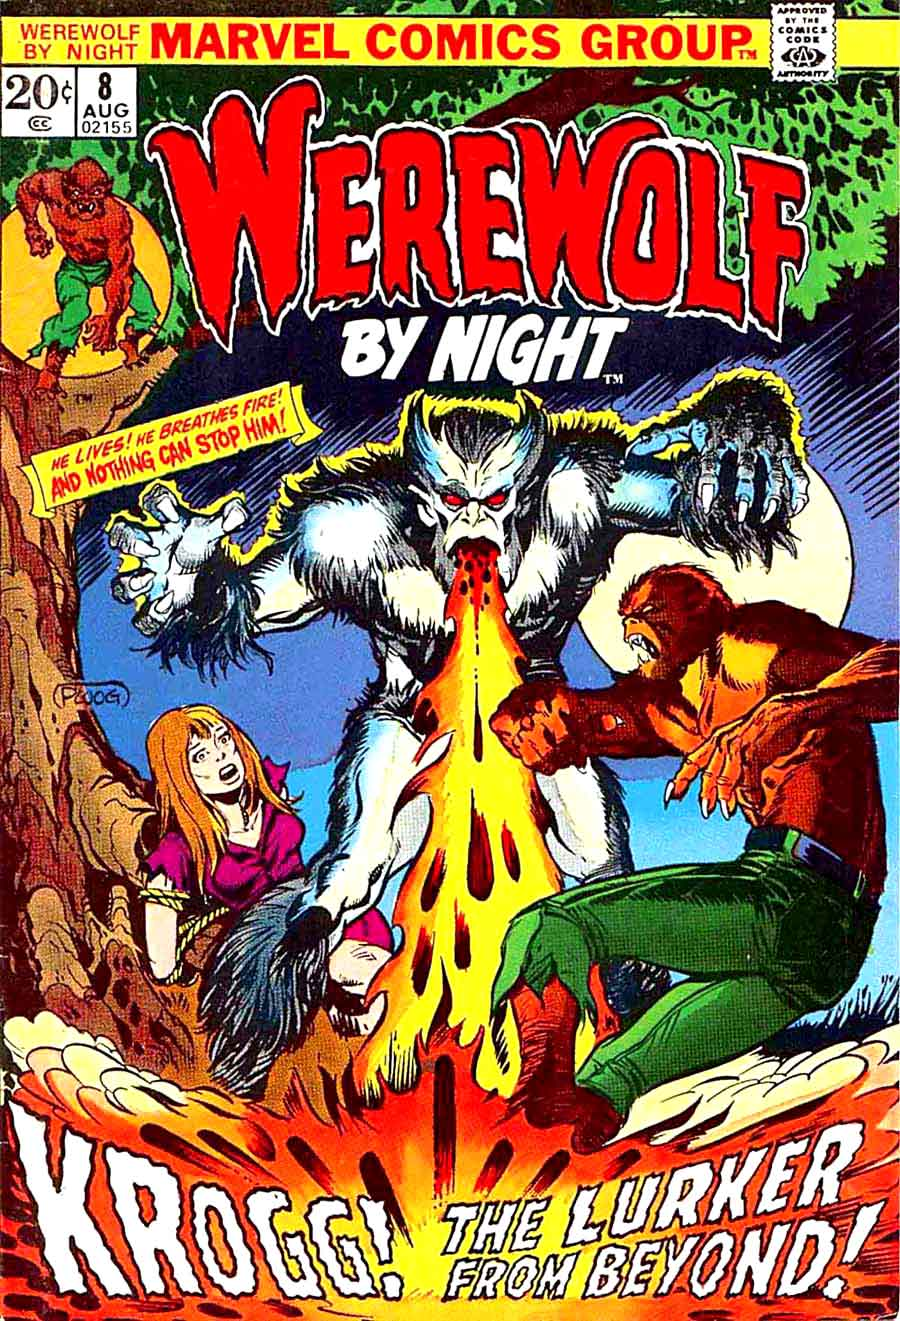 Werewolf by Night v1 #8 1970s marvel comic book cover art by Mike Ploog